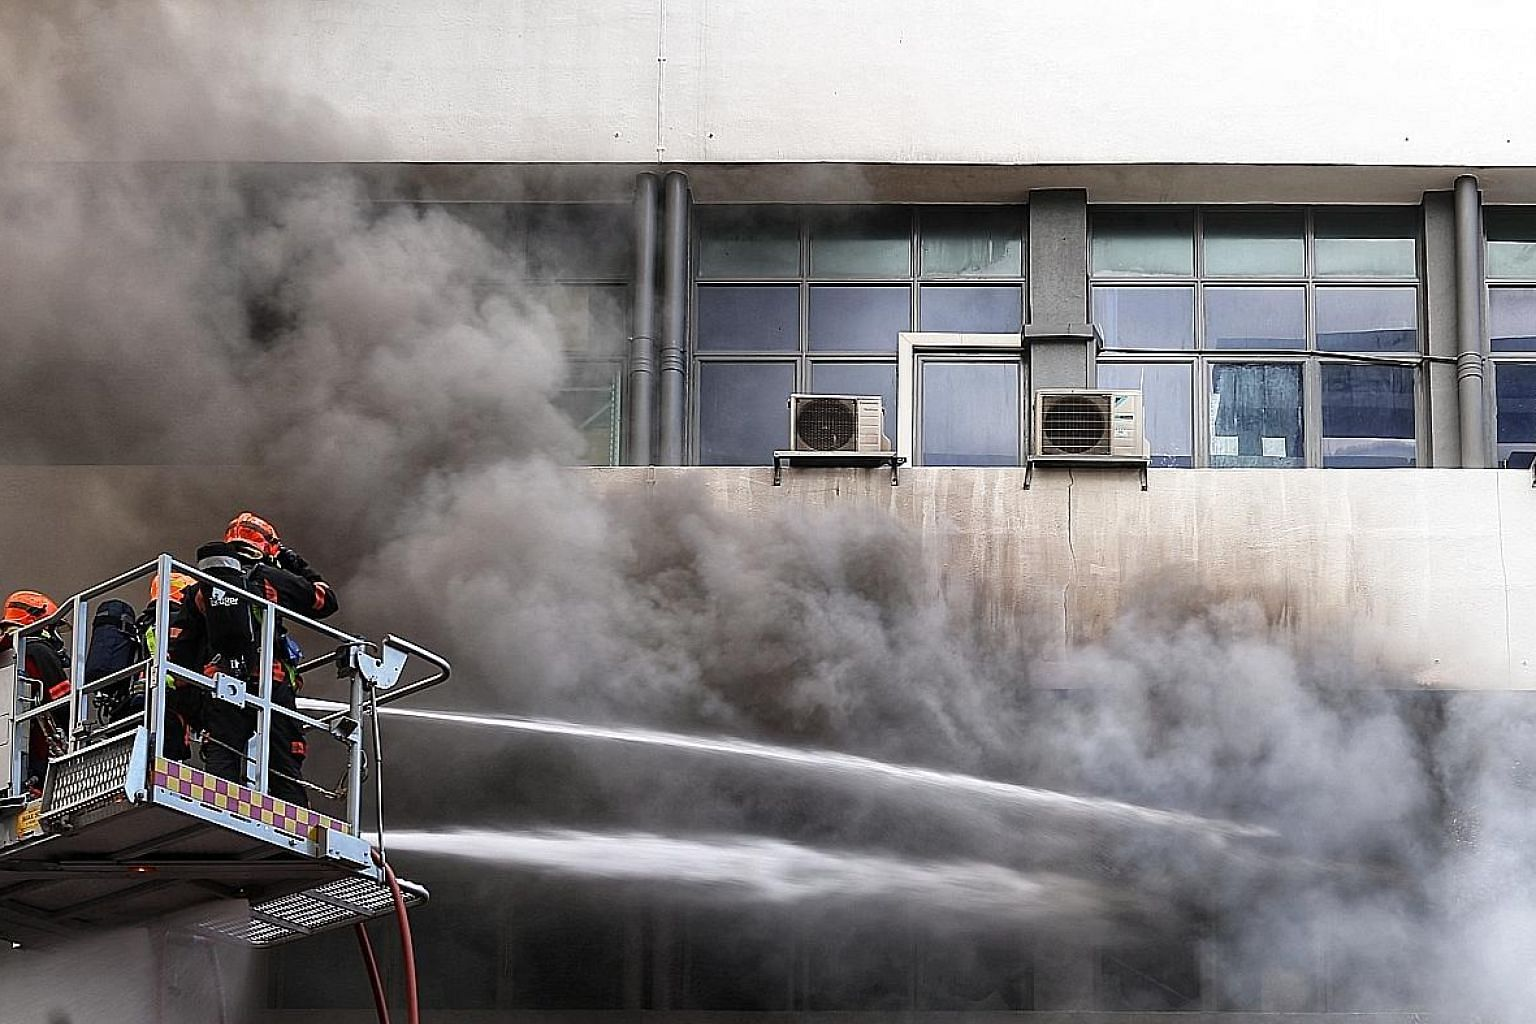 Buildings that may soon be required by law to install critical fire safety features include those built before the 1991/2002 Fire Code. The Fire Safety (Amendment) Bill also proposes the creation of new offences to target contractors and suppliers of